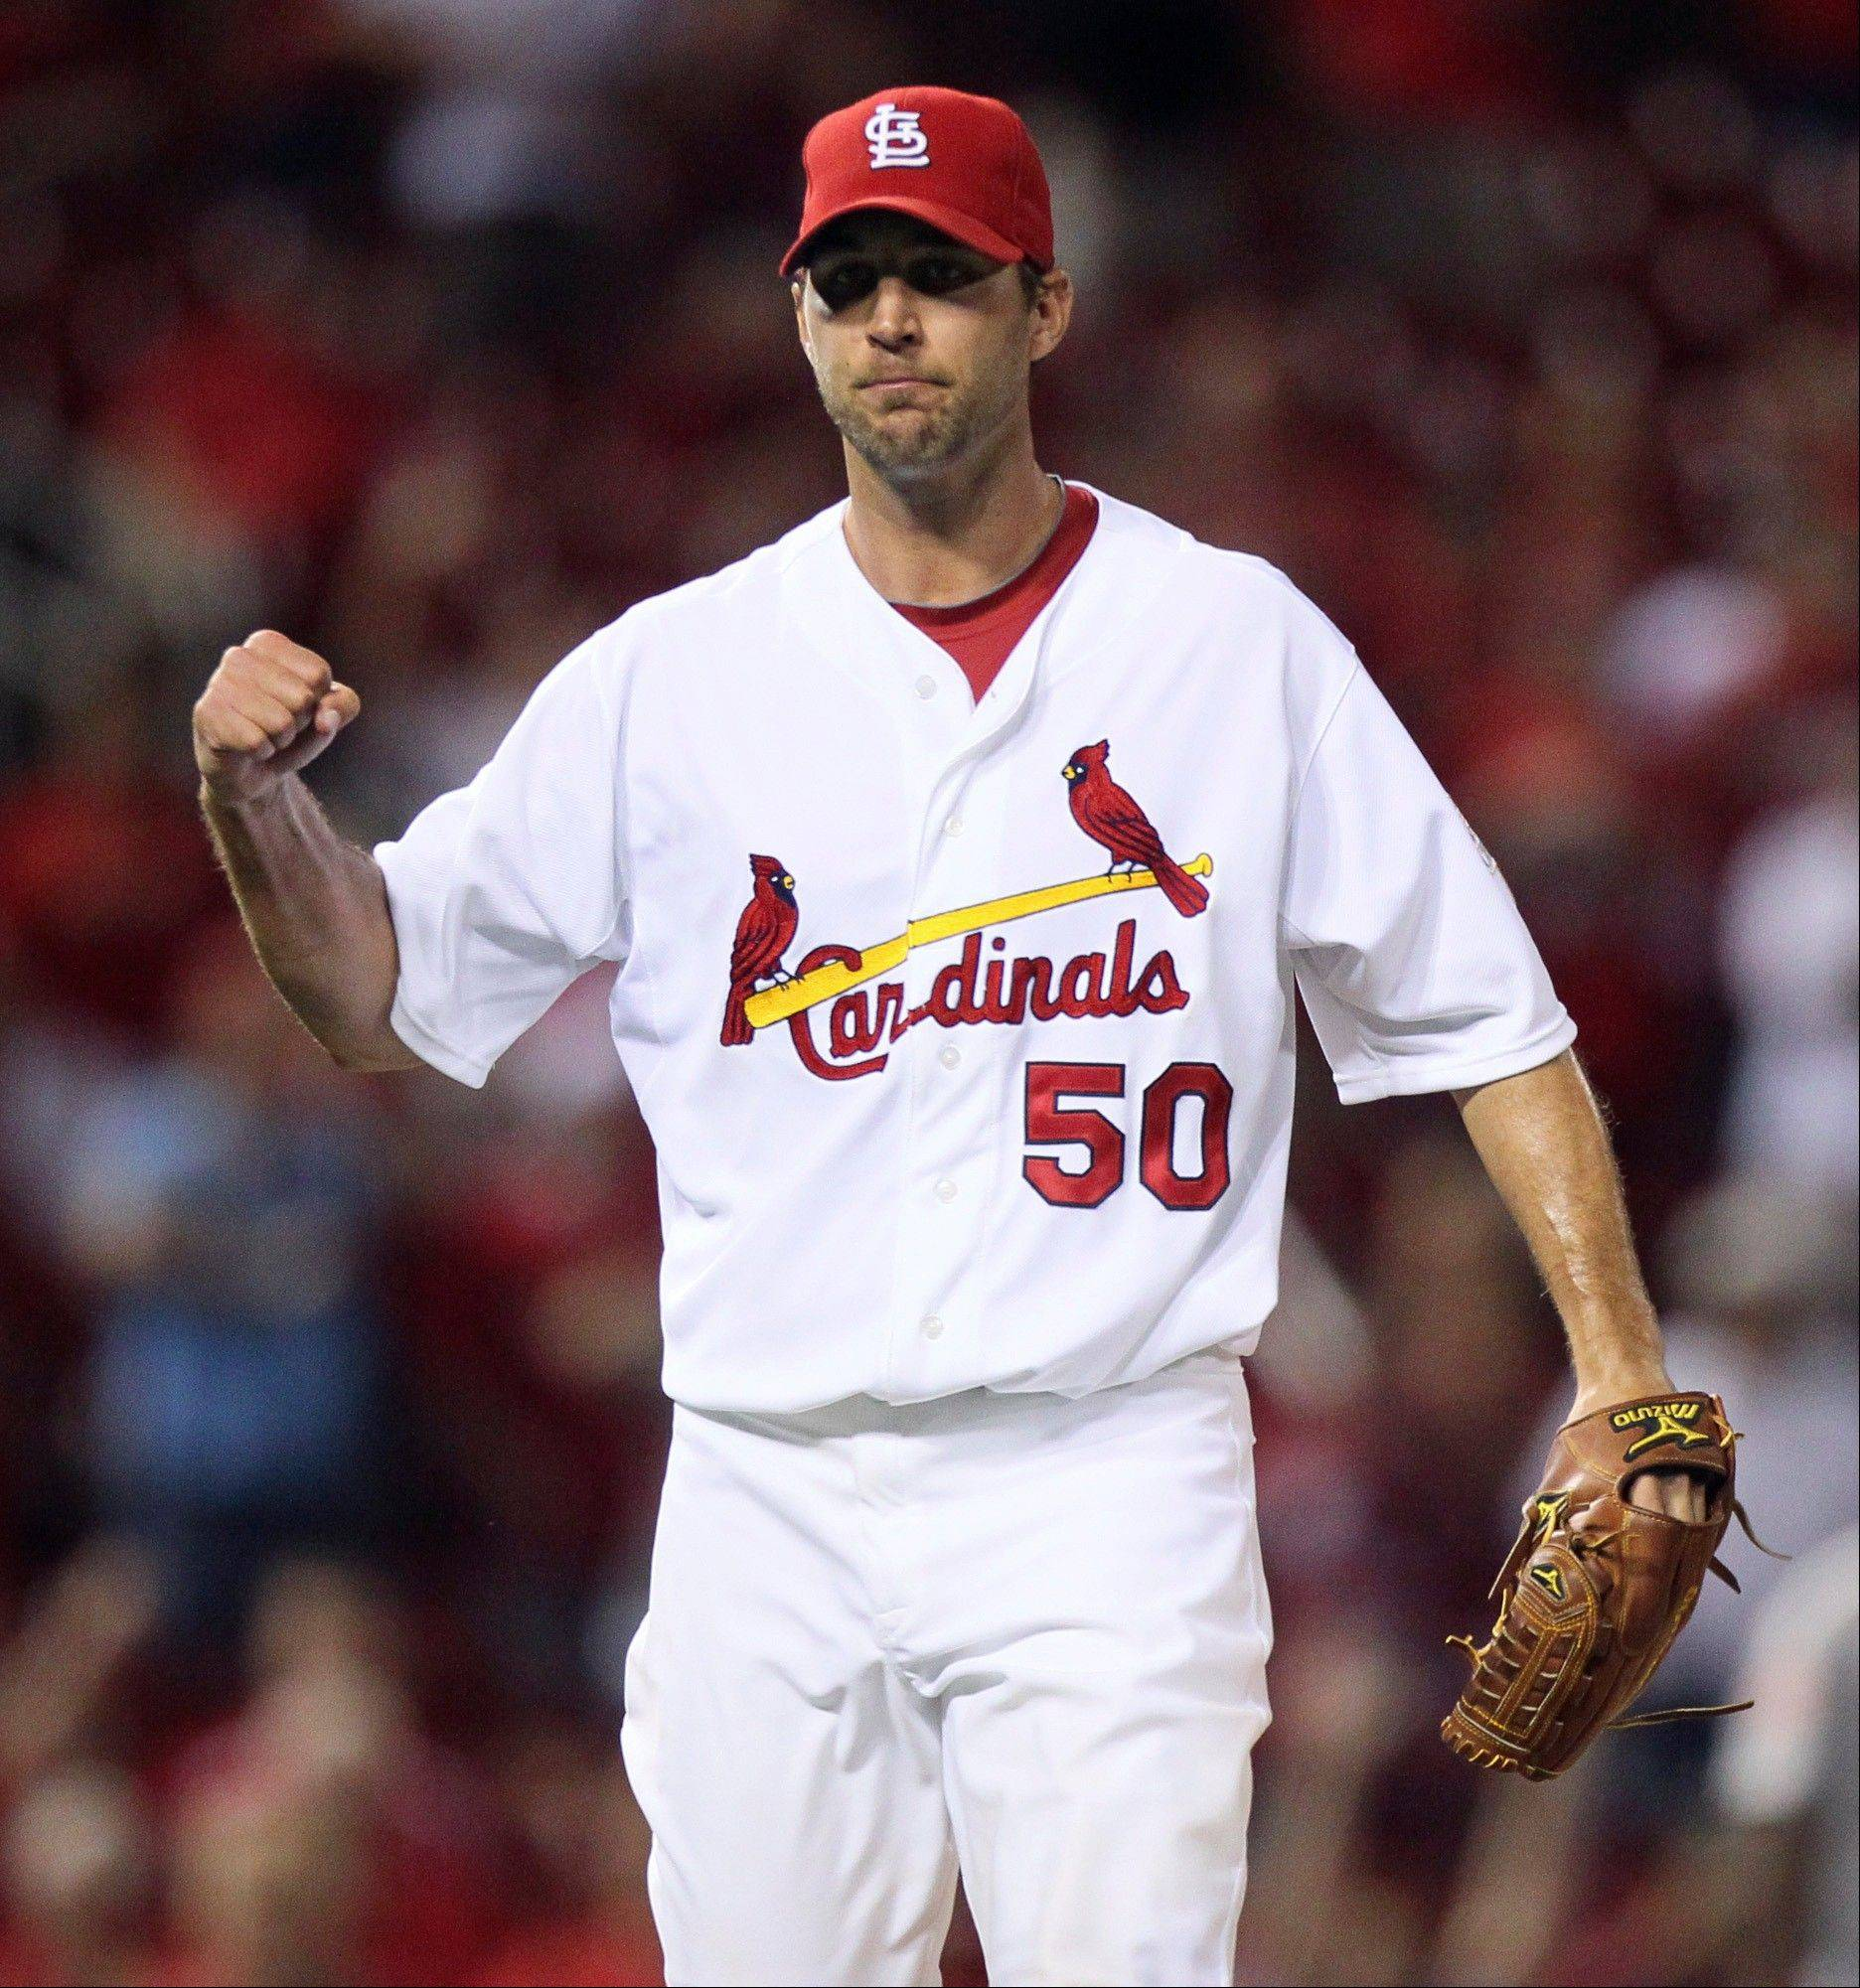 Wainwright dominates in Cards' 7-0 win over Astros